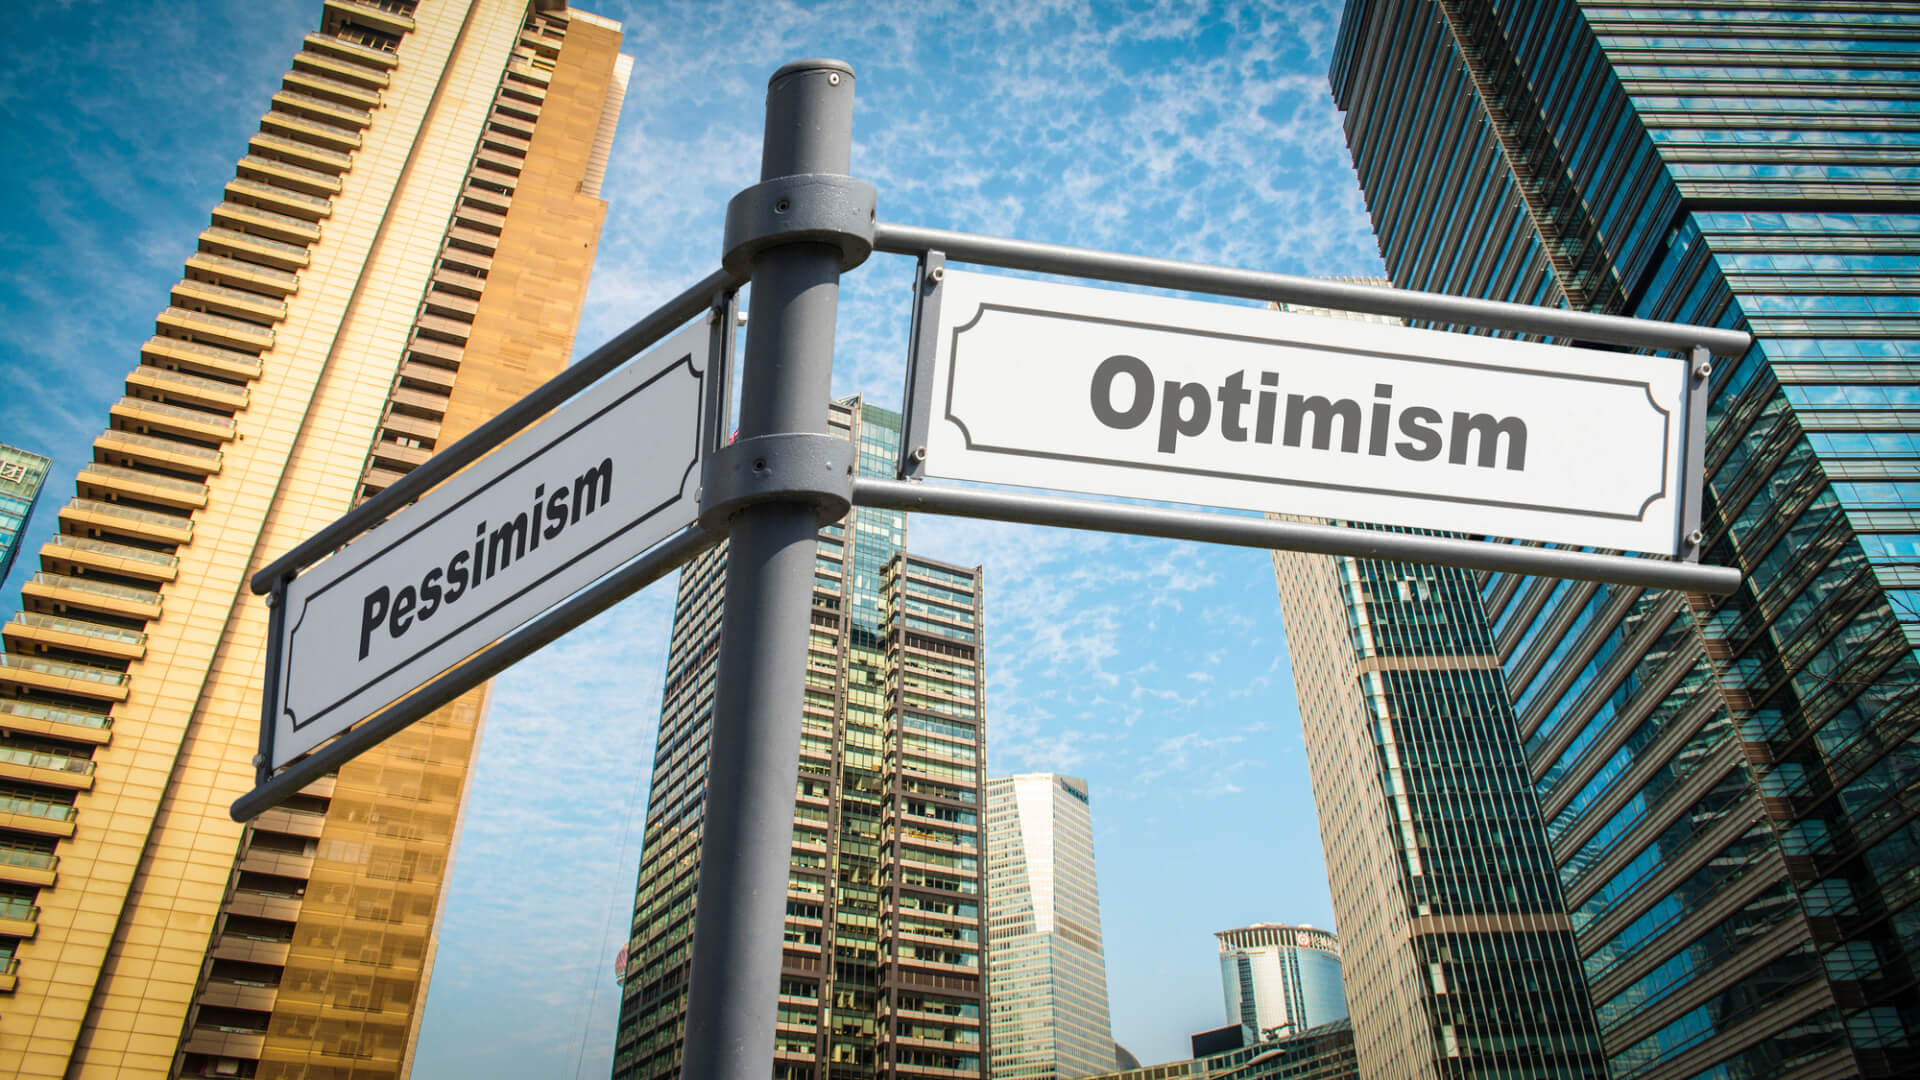 optimism vs pessimism